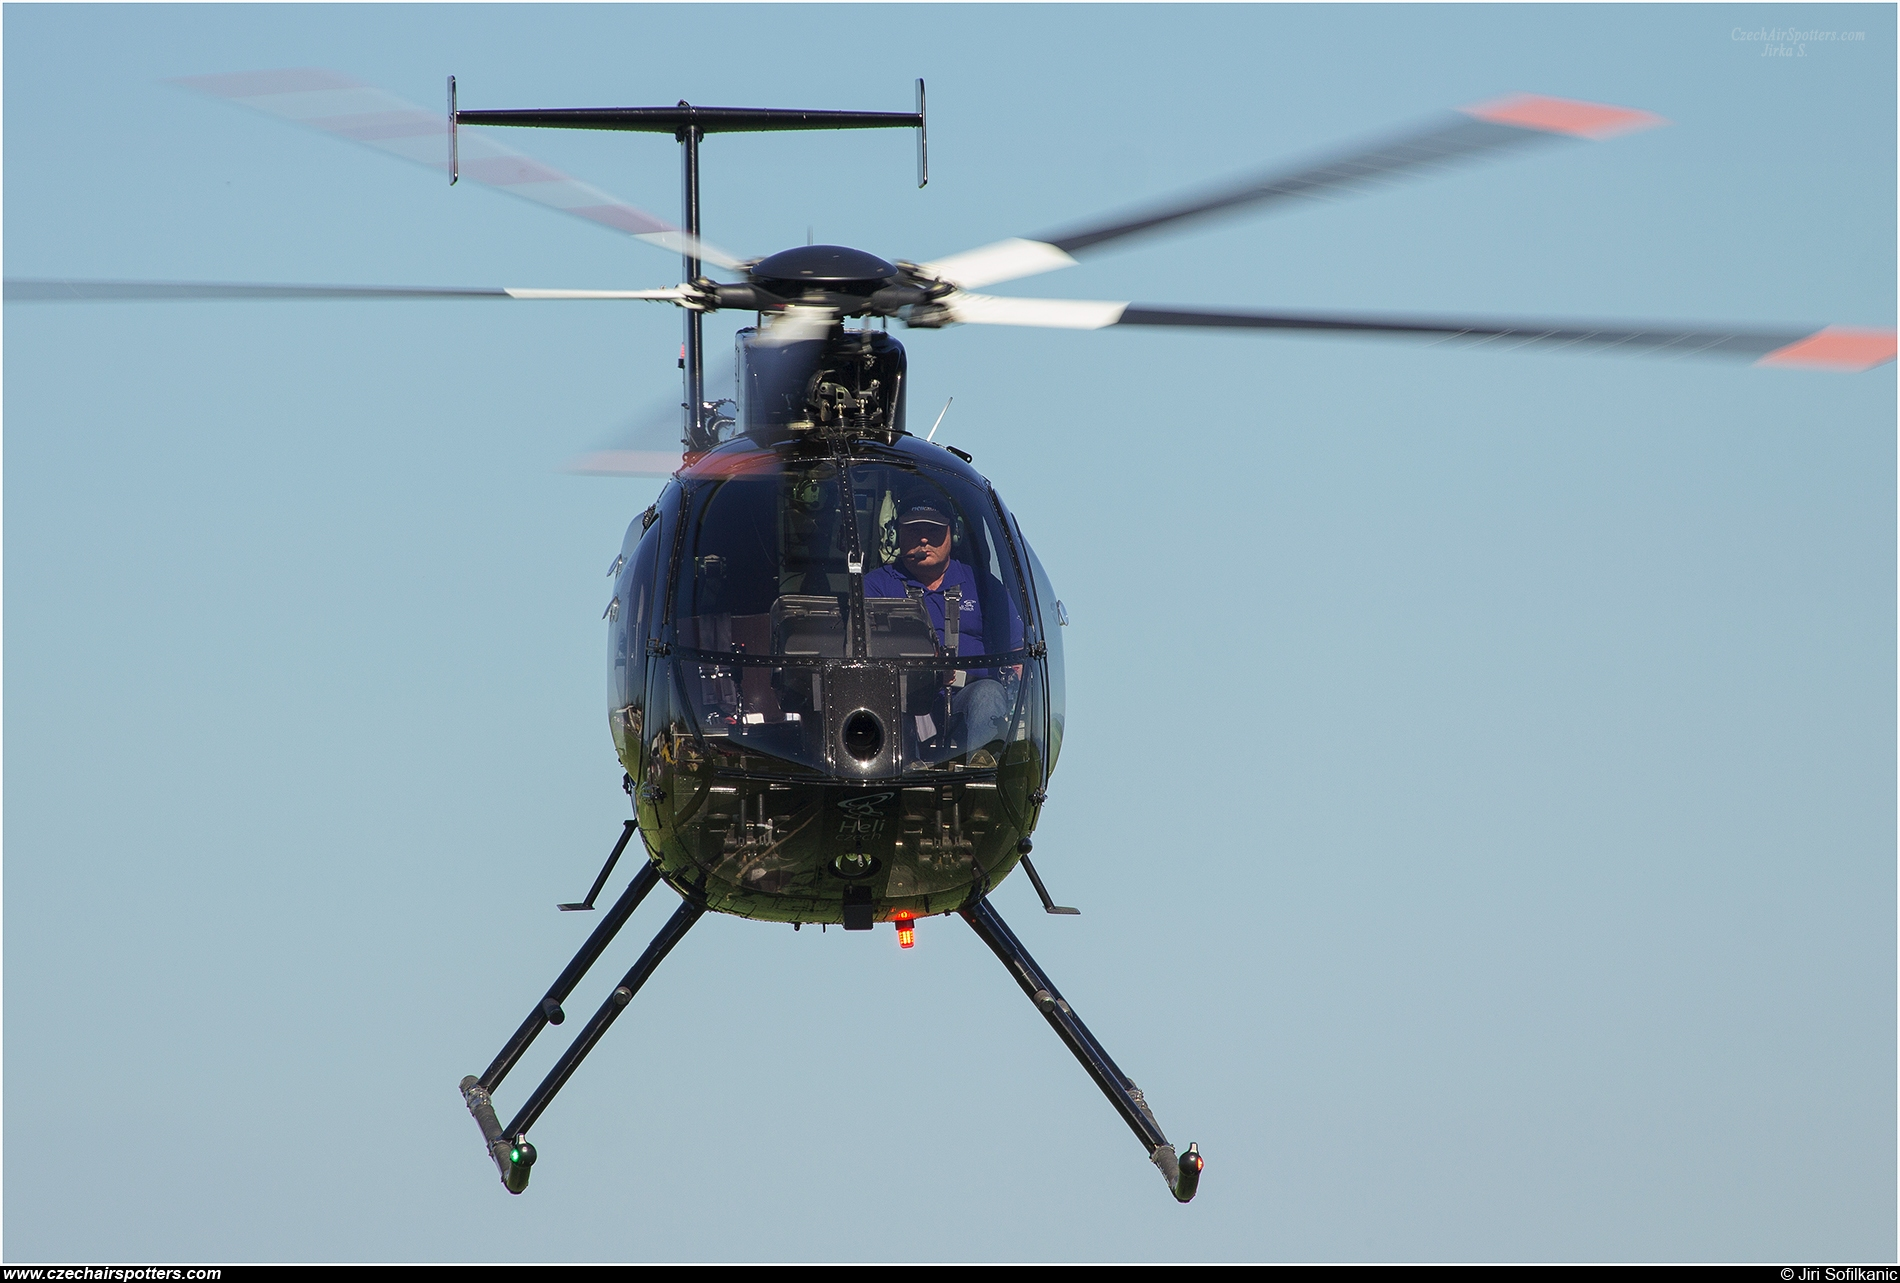 EUROPEAN AIR SERVICES – MD Helicopters MD 500E (369E) OK-HSO